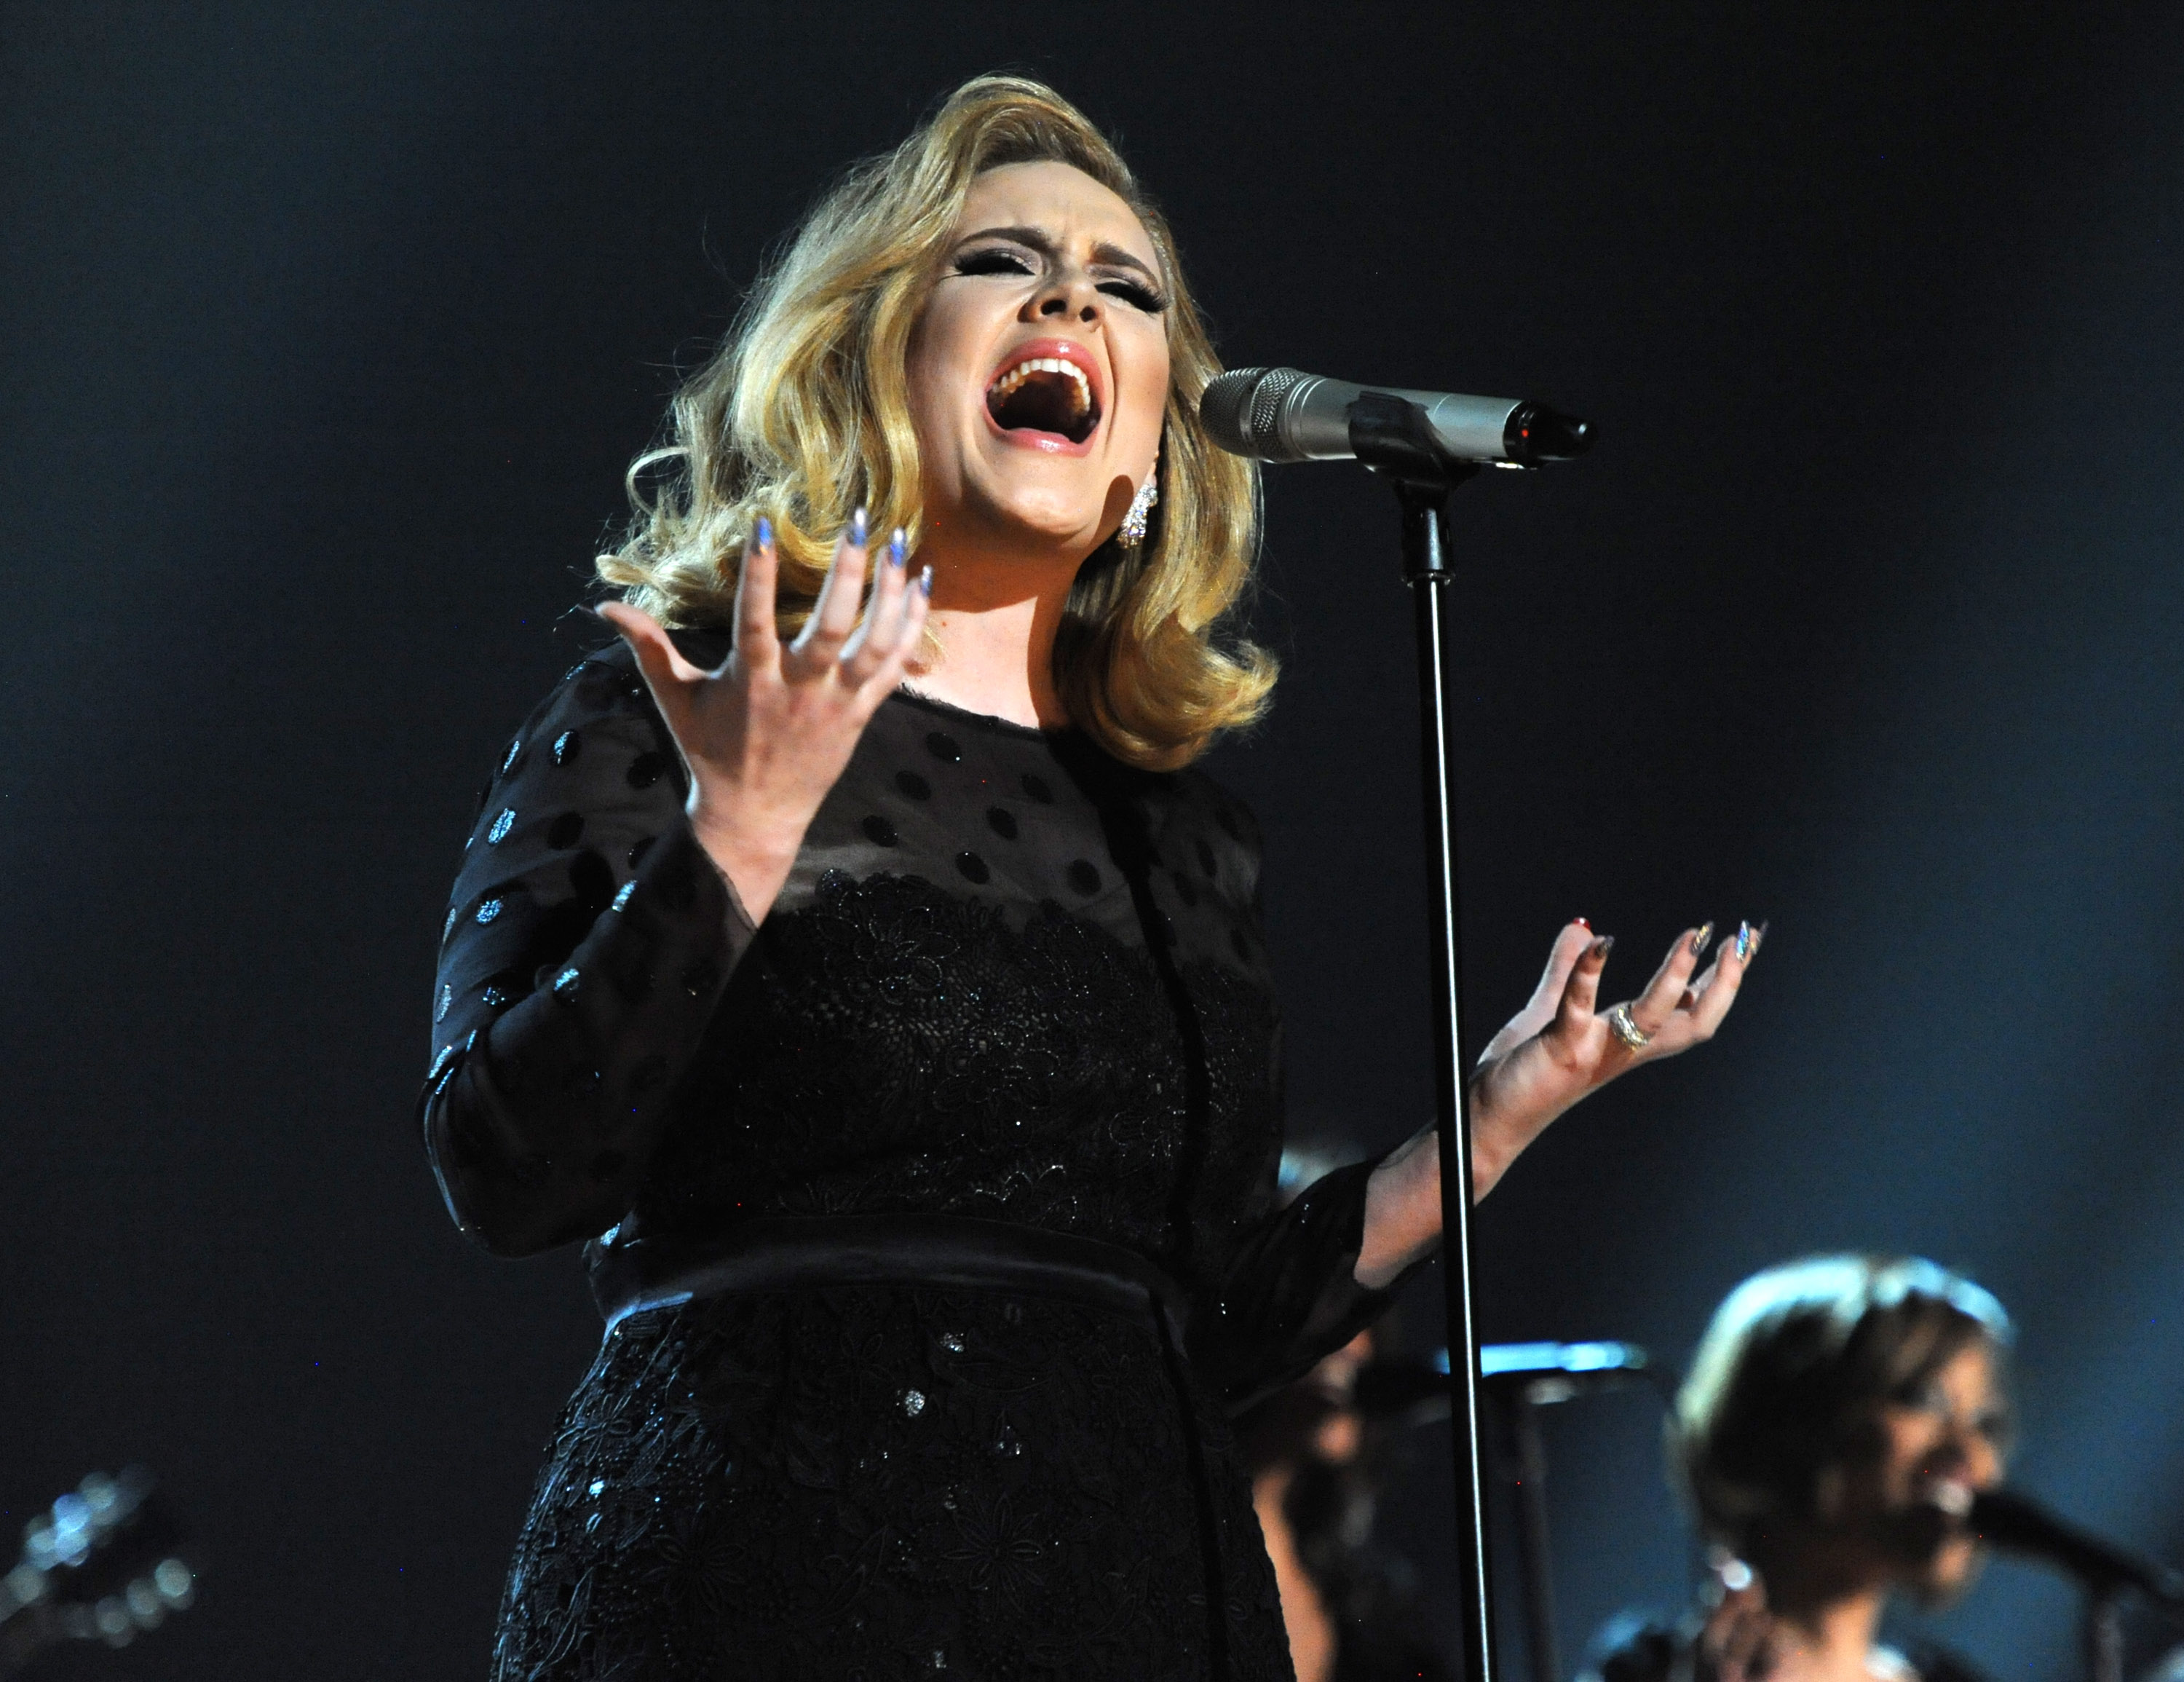 """Adele, whose album """"21"""" is the best-selling worldwide of any new artist since the turn of the millennium, is on independent label XL, which is part of Merlin."""